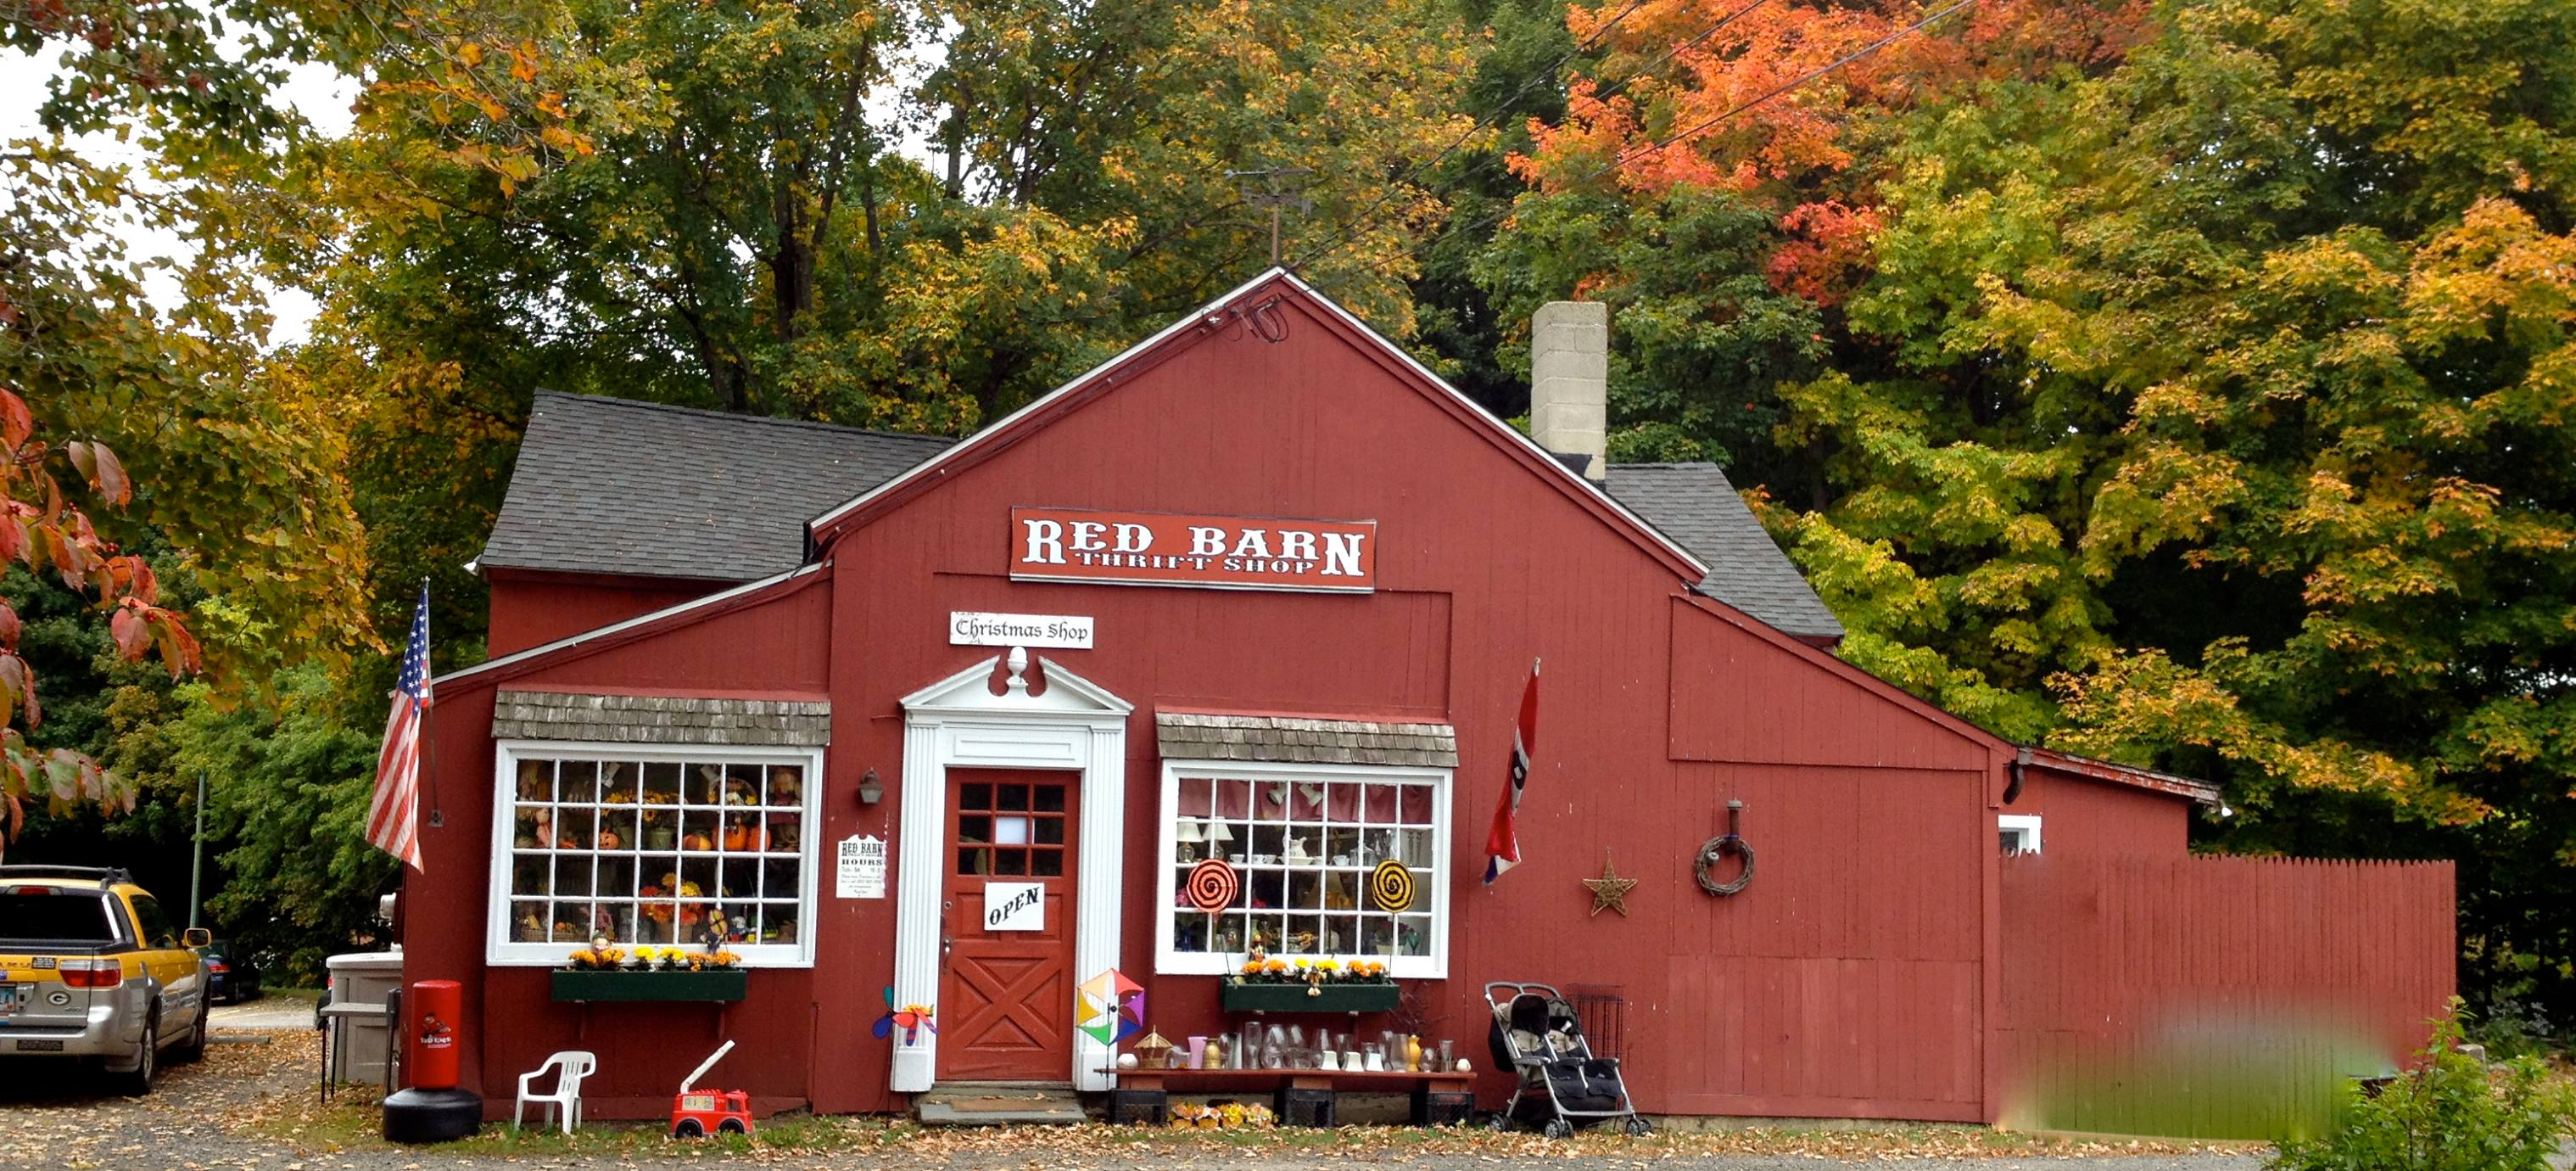 The Red Barn Thrift Shop In Connecticut Is Amazing